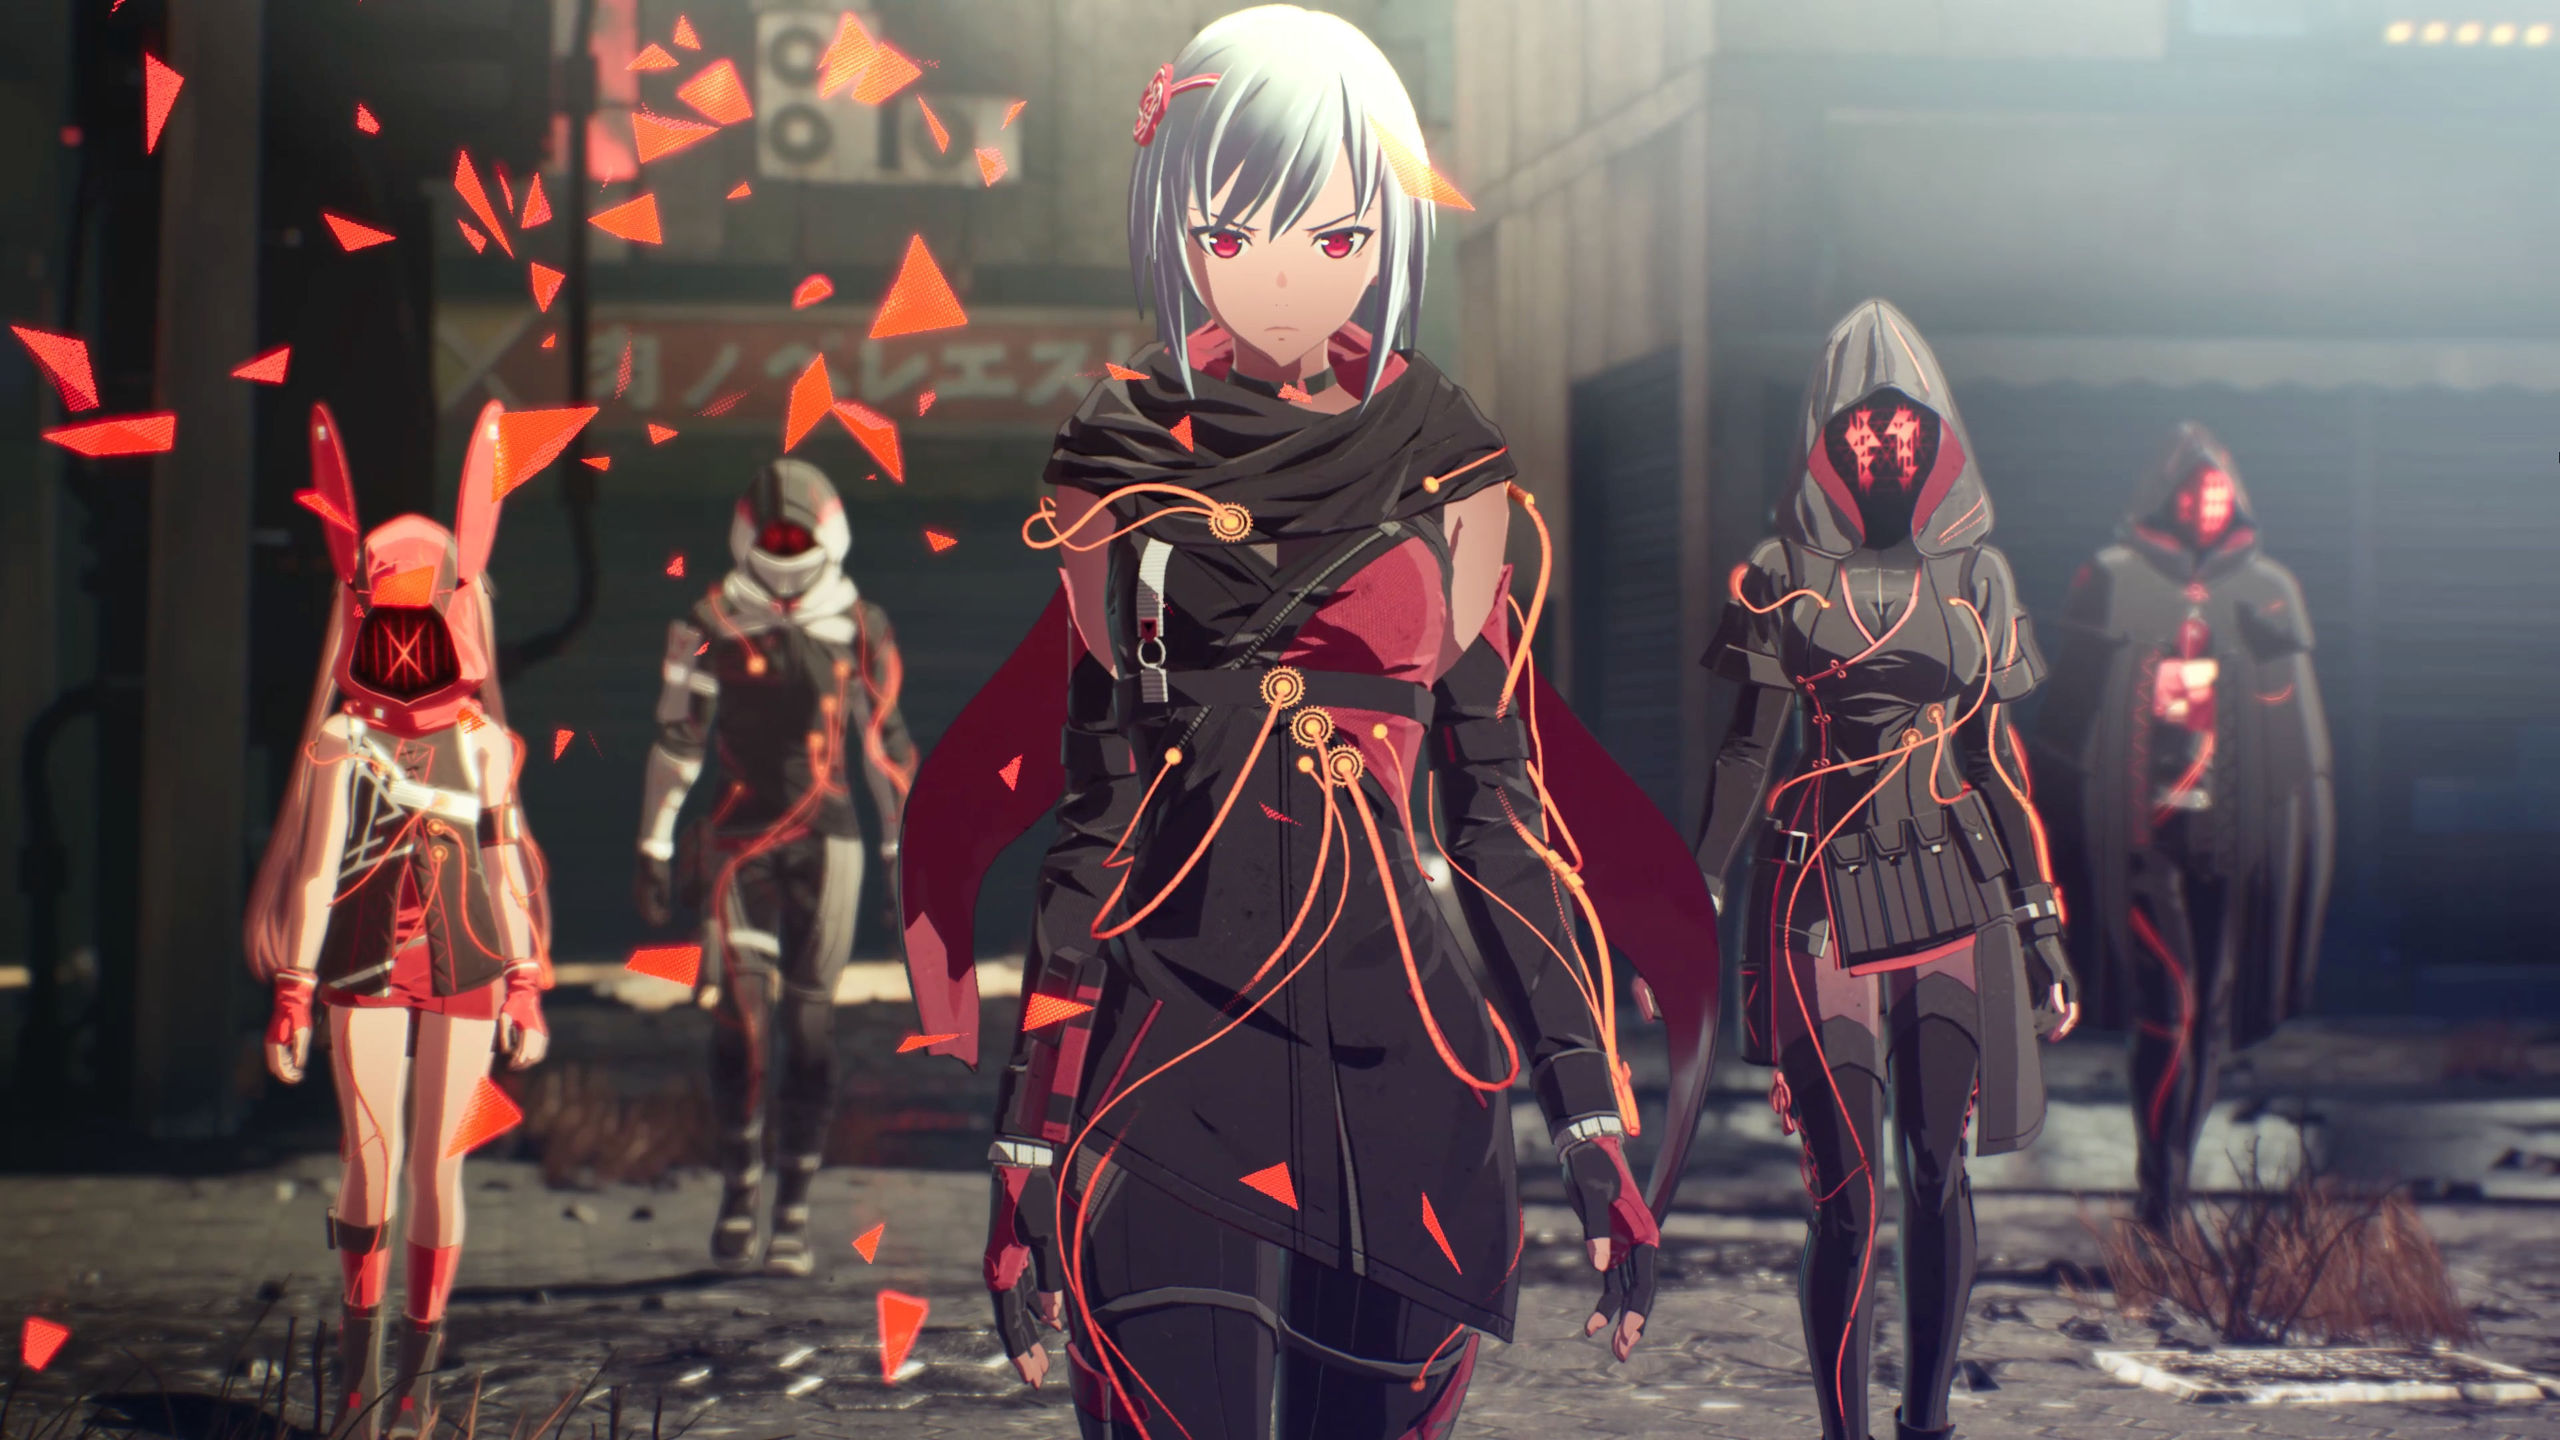 Screenshot from Scarlet Nexus Showing The Main Cast